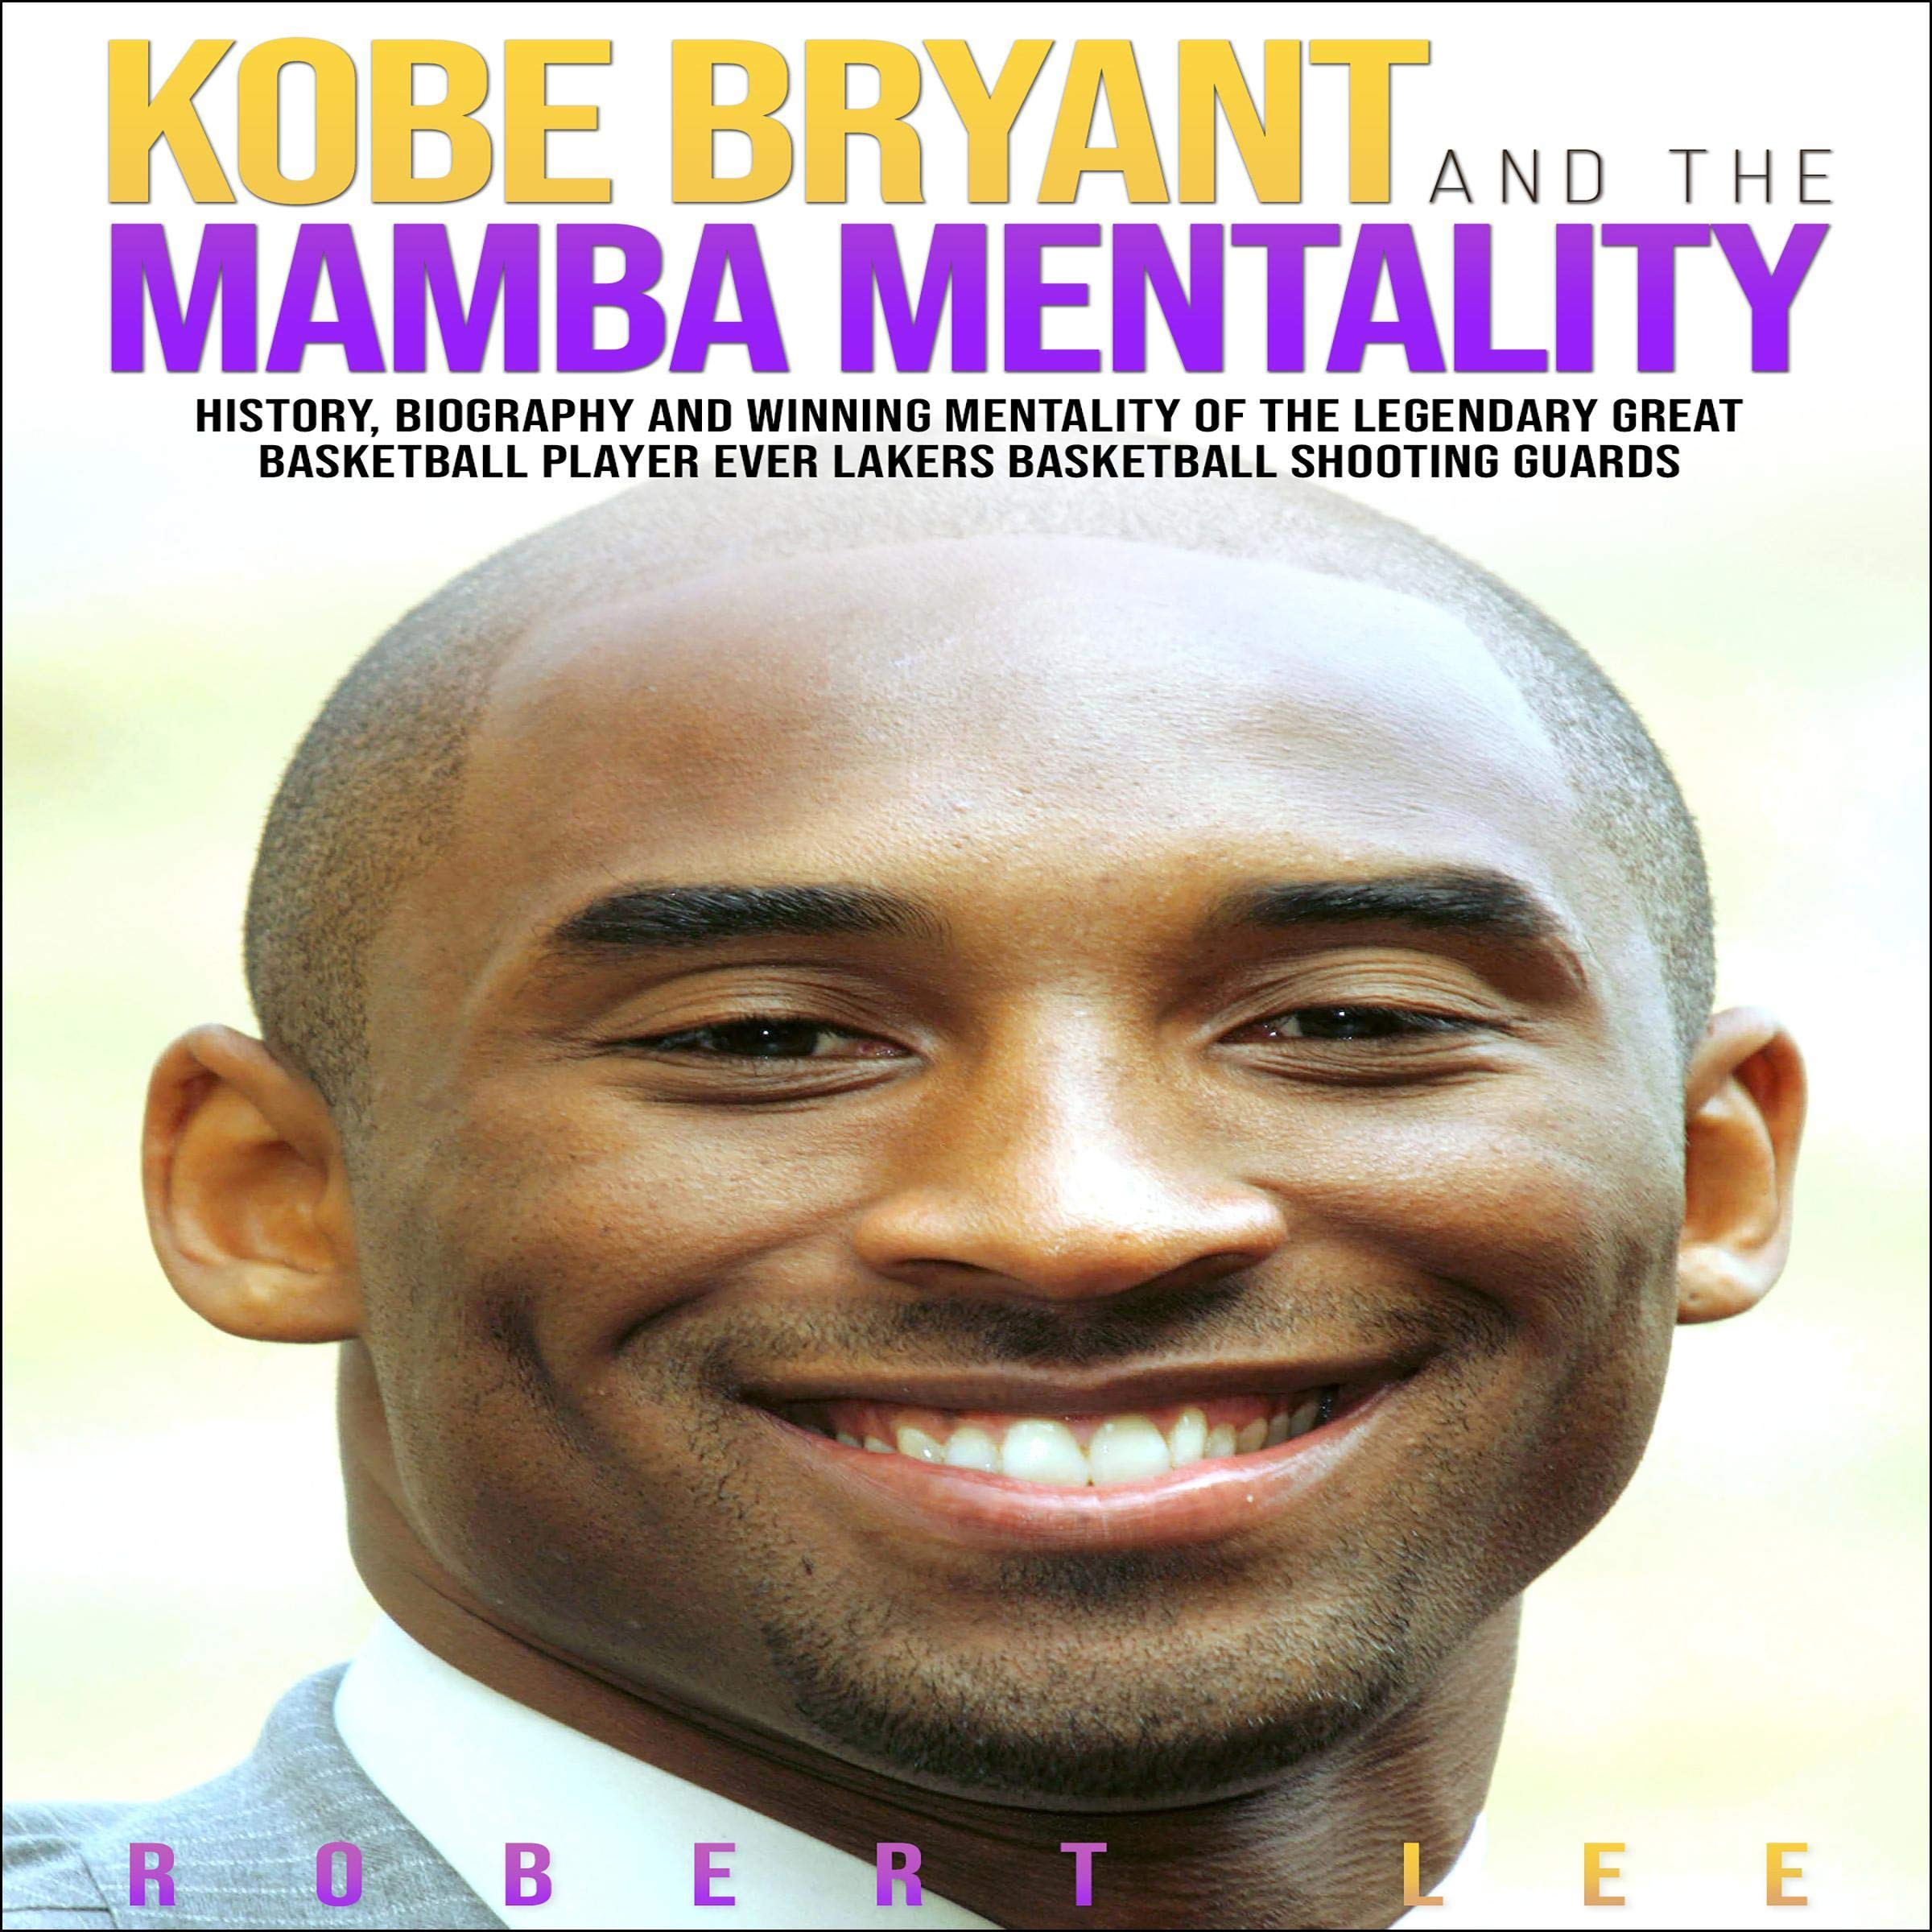 Image OfKobe Bryant And The Mamba Mentality: History, Biography And Winning Mentality Of The Legendary Great Basketball Player Eve...